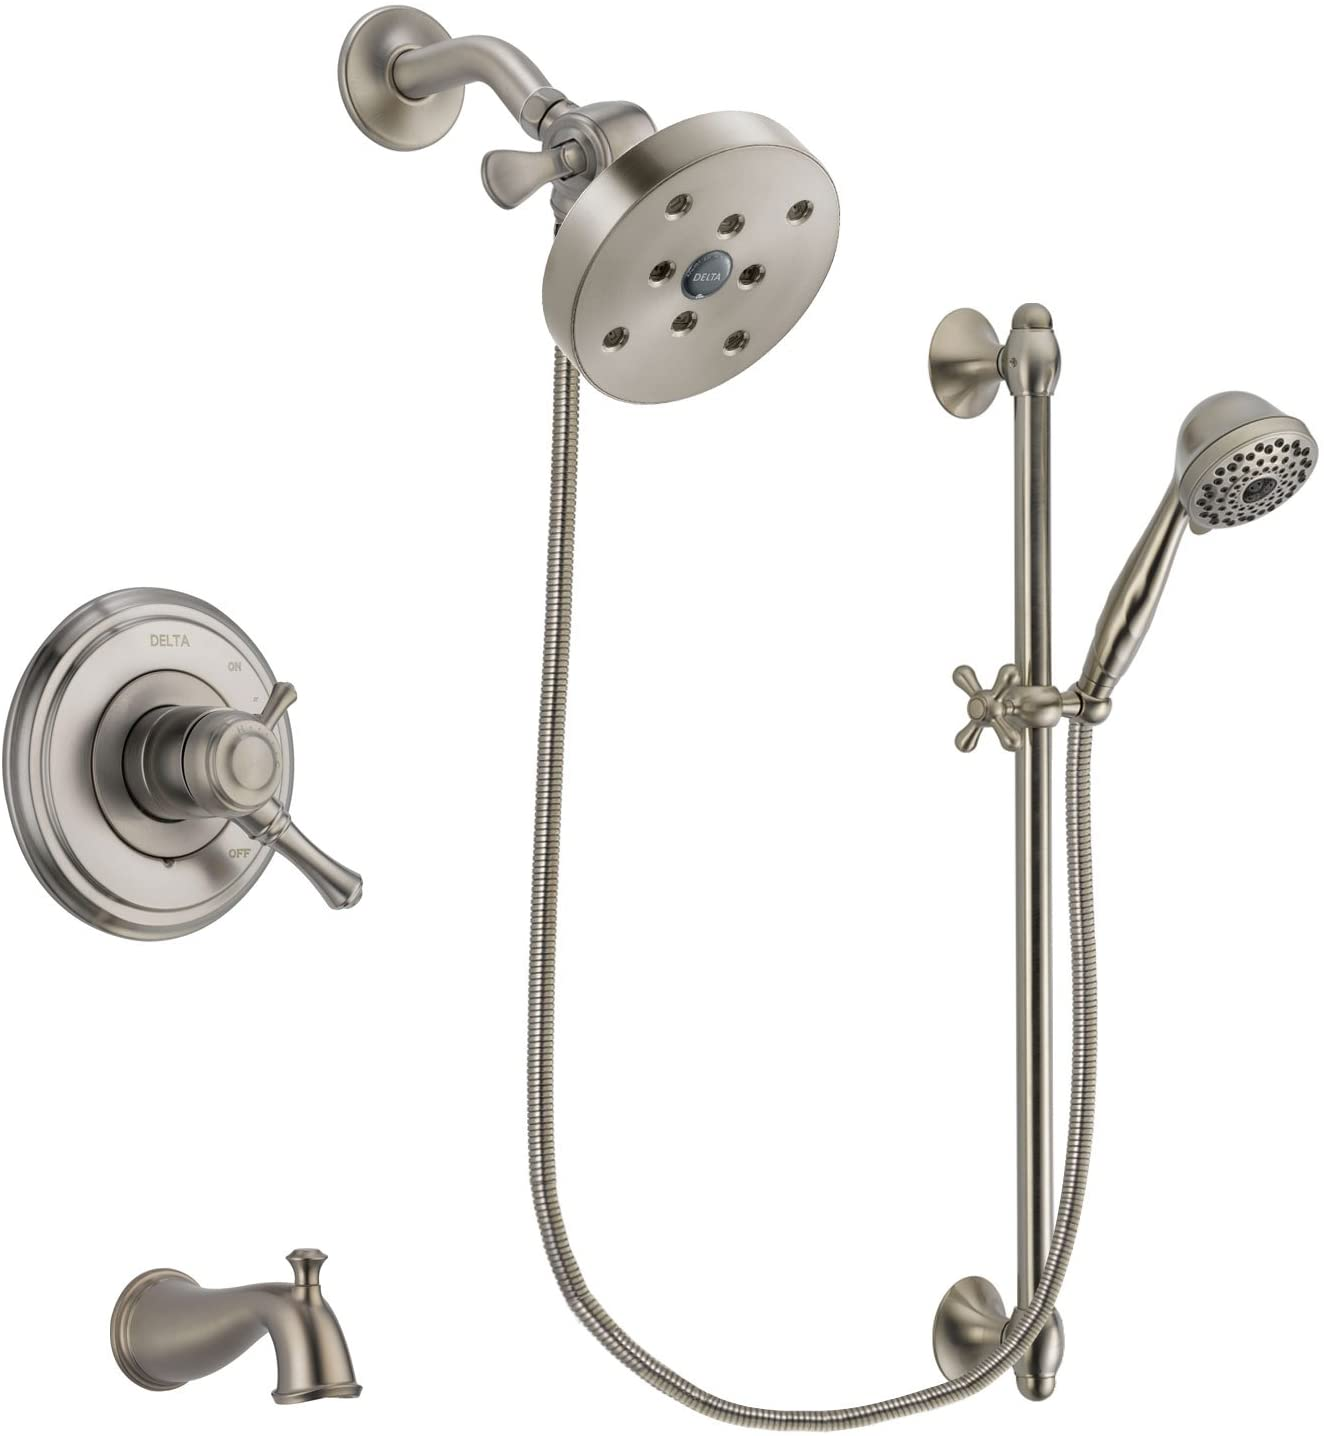 Delta Cassidy Stainless Steel Dual Control Tub and Shower Faucet System Package with 5-1/2 inch Shower Head and 7-Spray Handheld Shower with Slide Bar Includes Rough-in Valve and Tub Spout DSP1783V